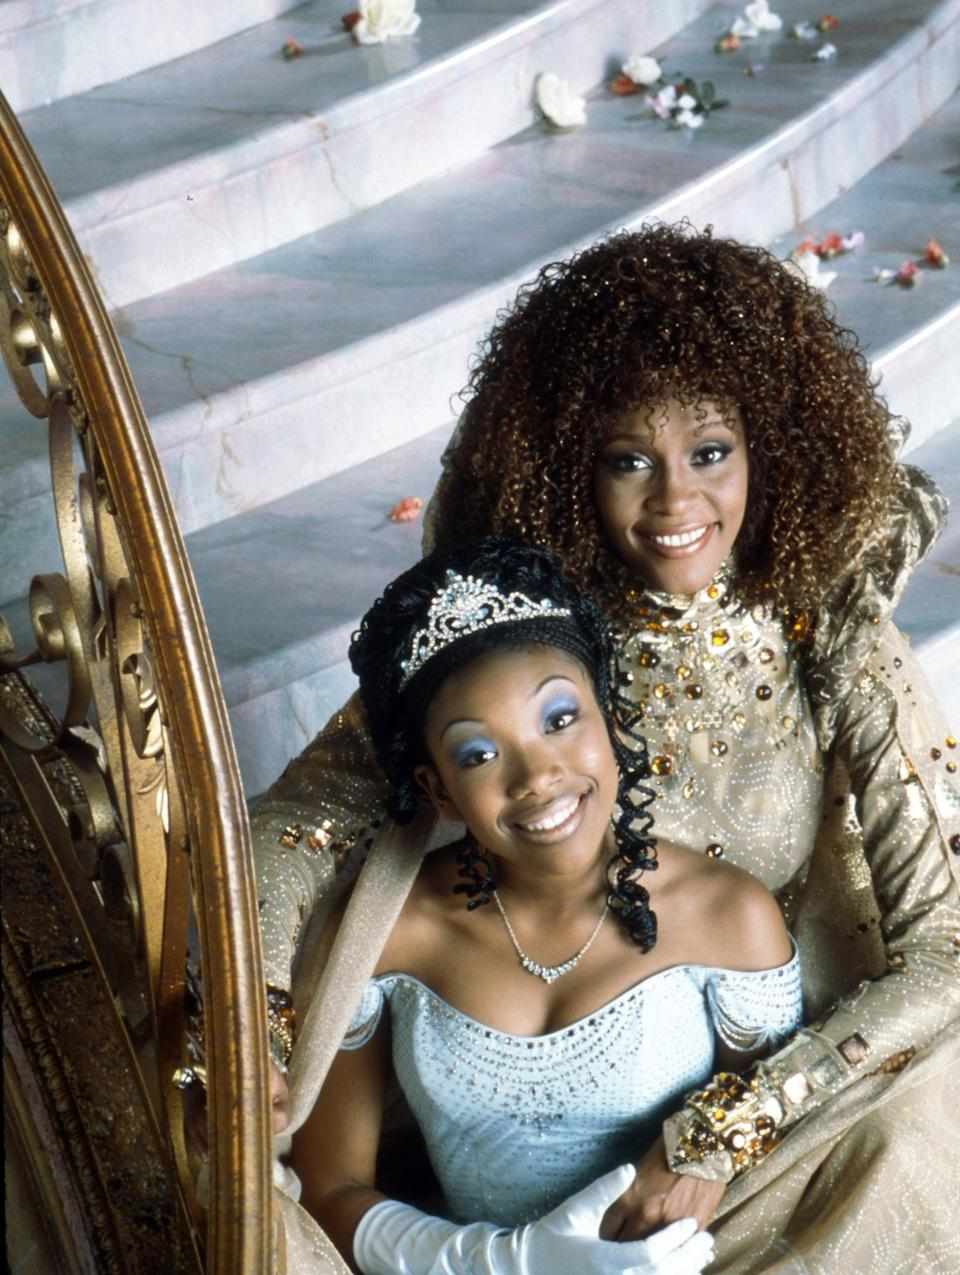 "<p>In the first multiracial cast performance of the classic fairytale, singer-songwriter Brandy plays a Black Cinderella navigating life under the cruelty of her wicked stepmother, played by Bernadette Peters. Released in 1997, the film has a star-studded cast, including the late Whitney Houston and the Grammy-, Emmy-, Academy-, and Tony-Award-winning Whoopi Goldberg.</p> <p><a href=""https://www.amazon.com/Rodgers-Hammersteins-Cinderella-Whitney-Houston/dp/B00004Z4SE/"" class=""link rapid-noclick-resp"" rel=""nofollow noopener"" target=""_blank"" data-ylk=""slk:Watch Cinderella on Amazon"">Watch <strong>Cinderella</strong> on Amazon</a>.</p>"